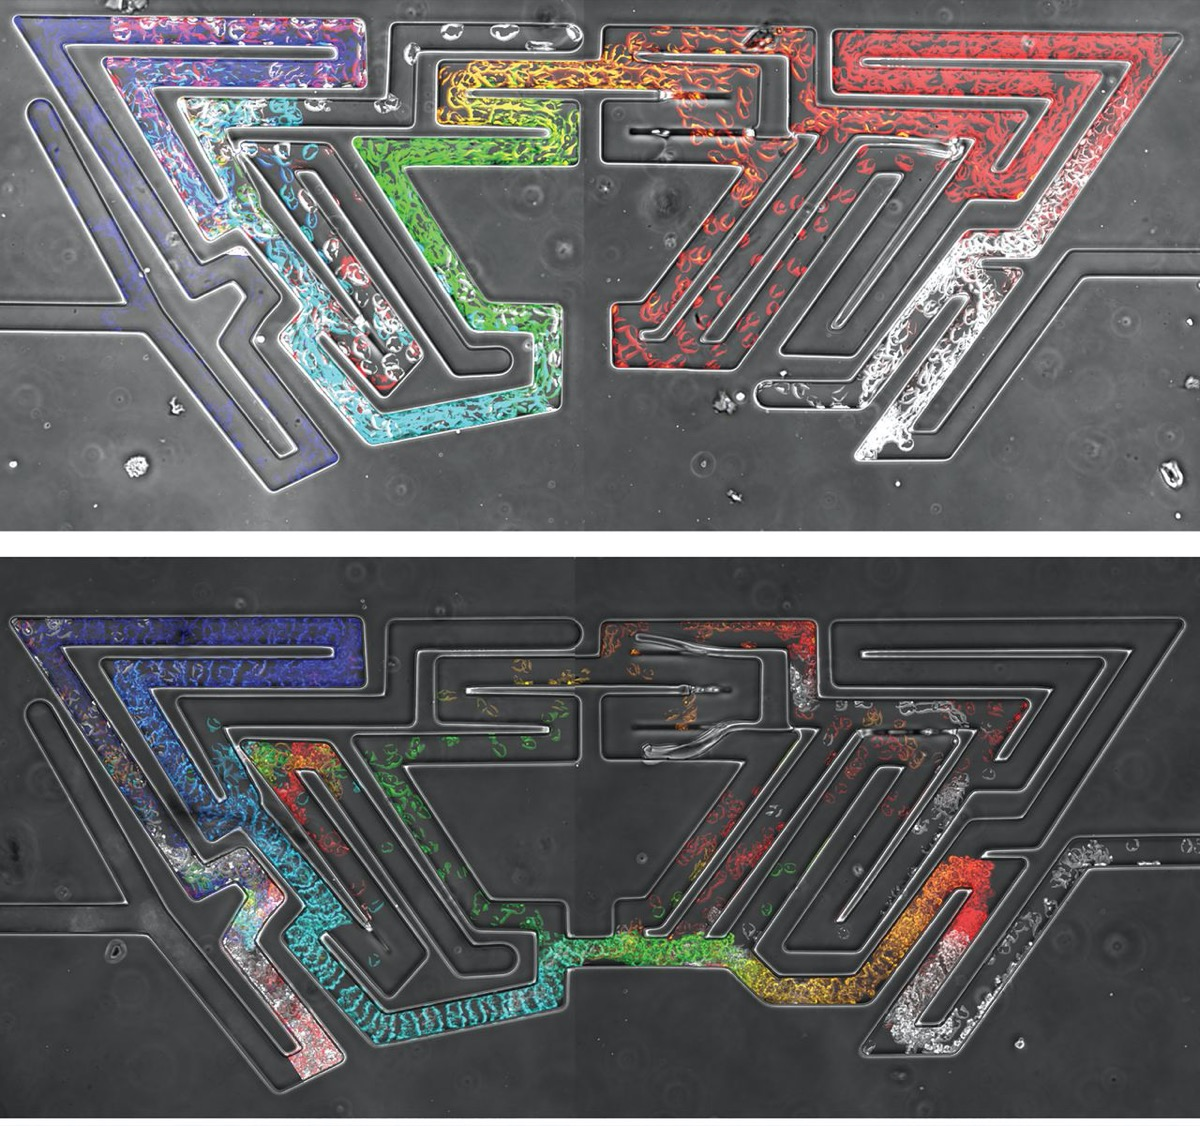 two photos of a maze with colorful networks of cells growing through it - they are solving the maze